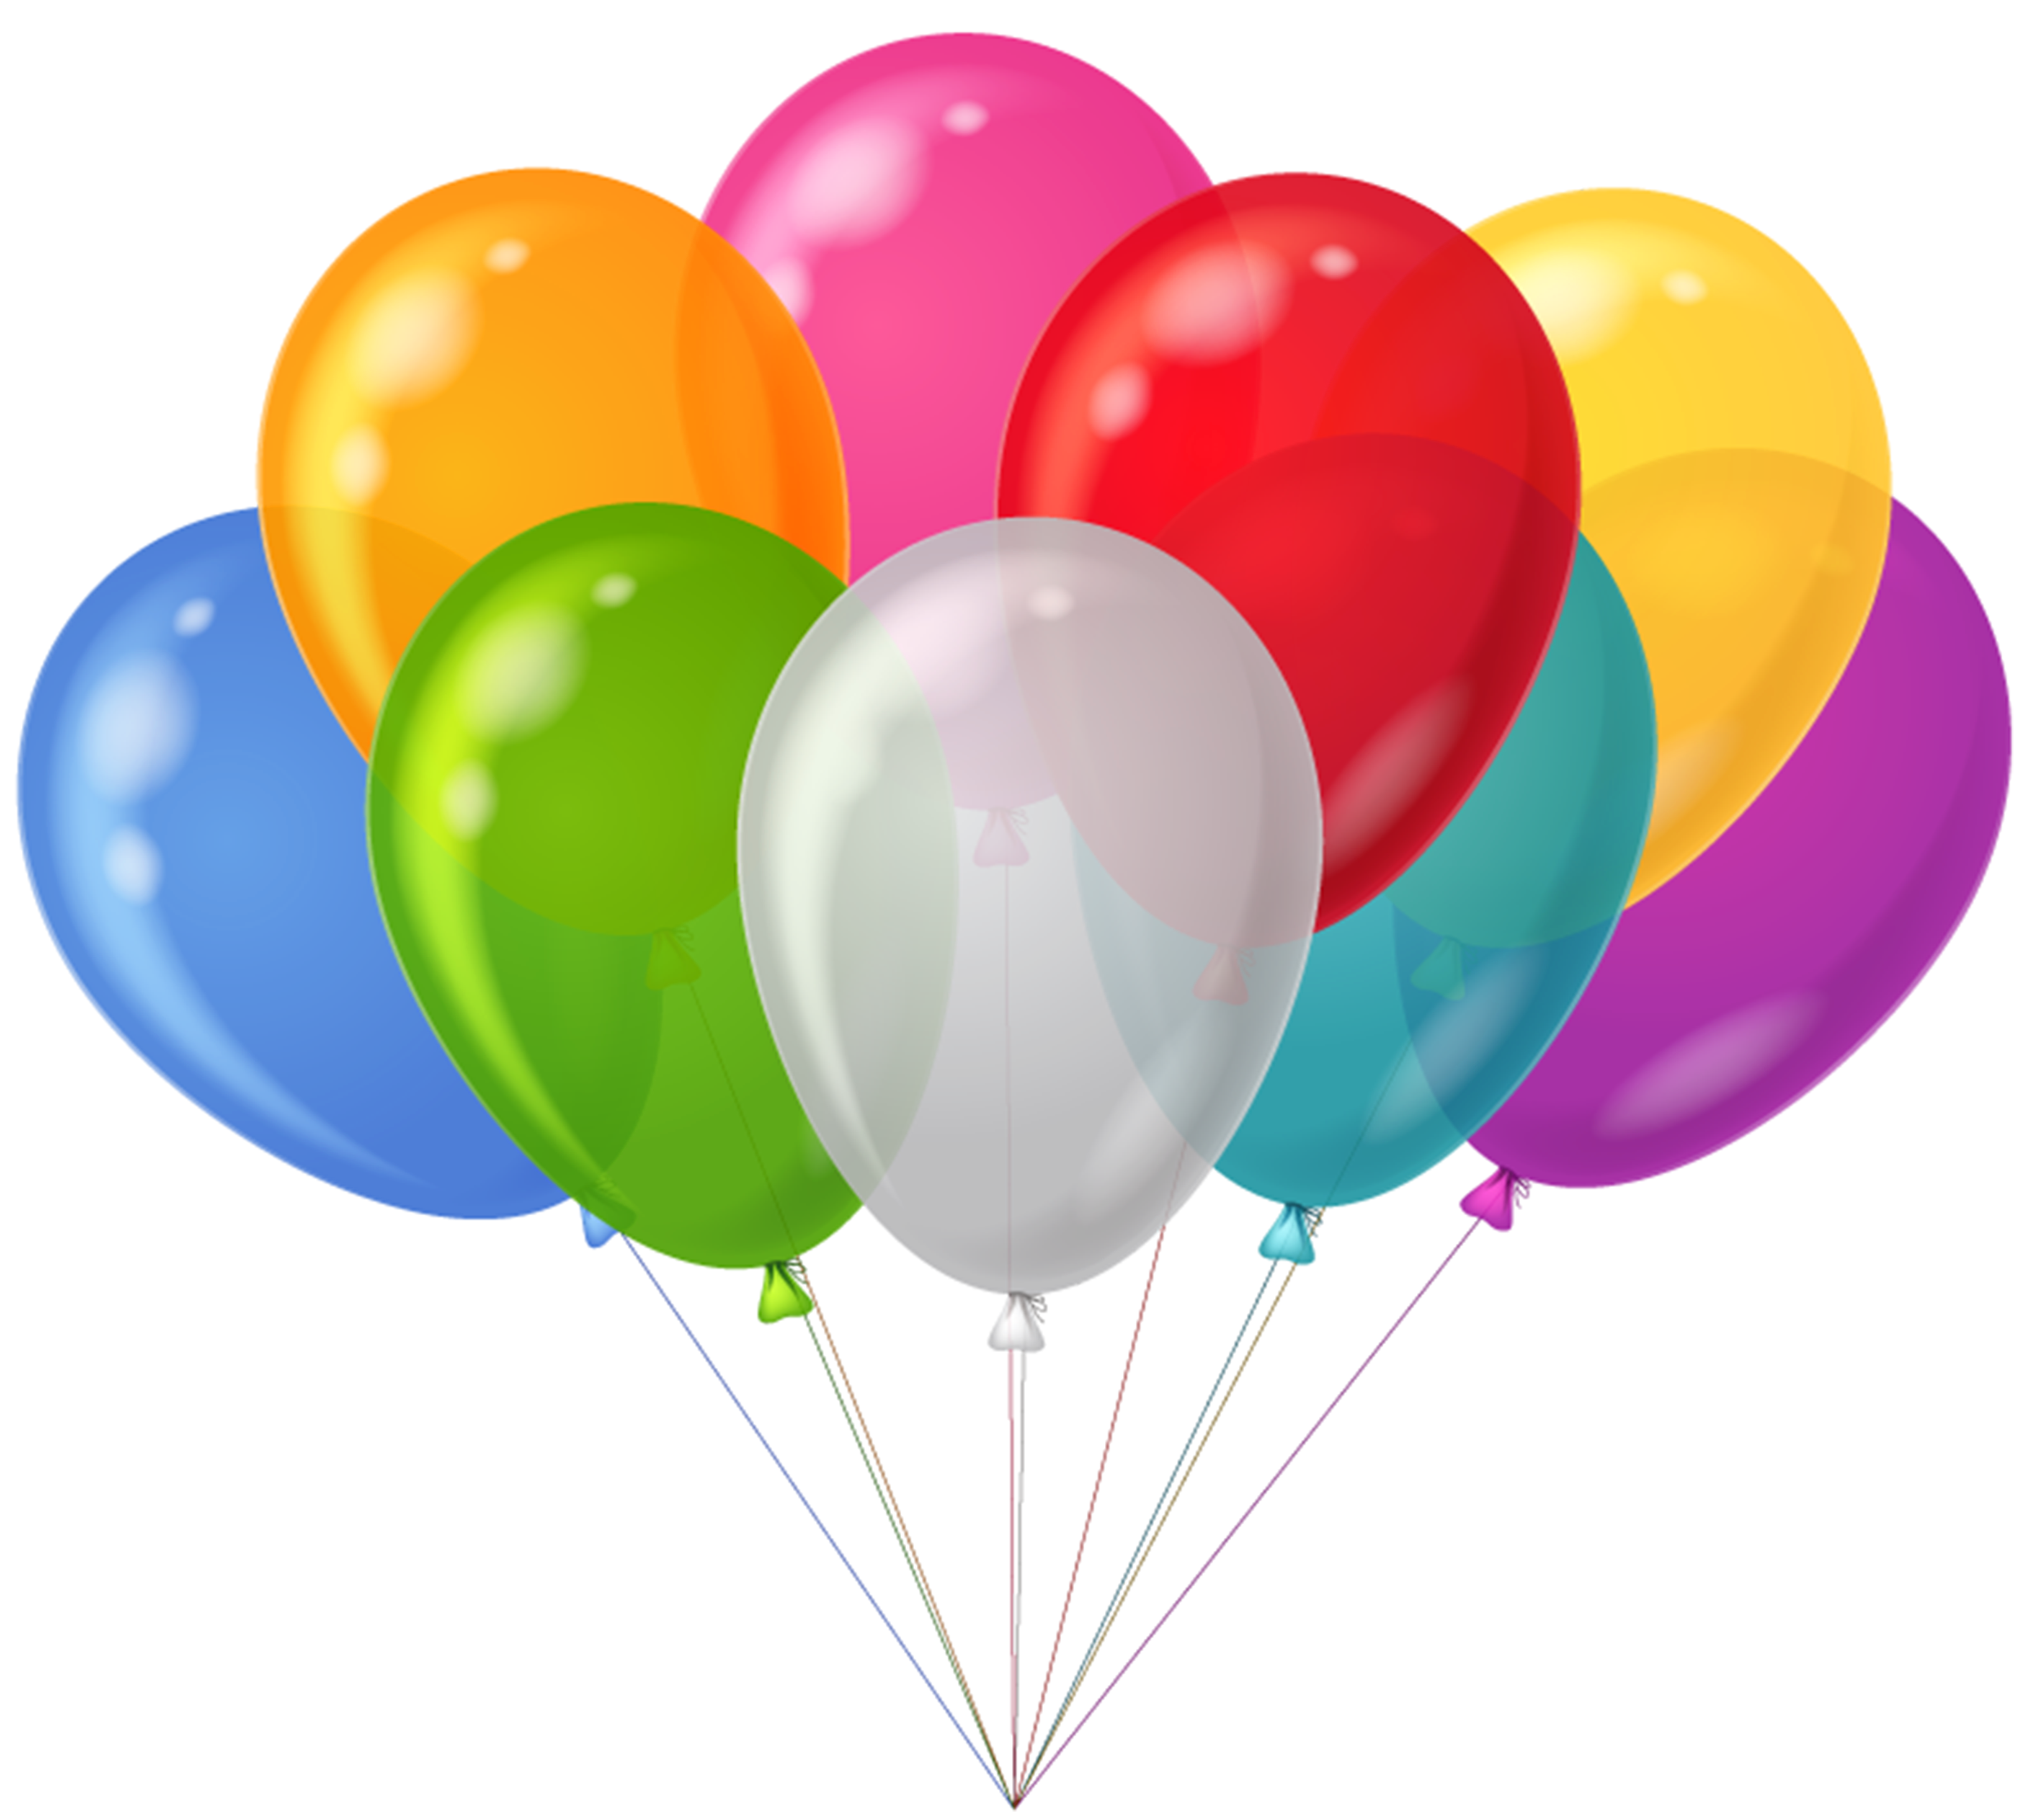 Color Balloon Background Transparent PNG Images